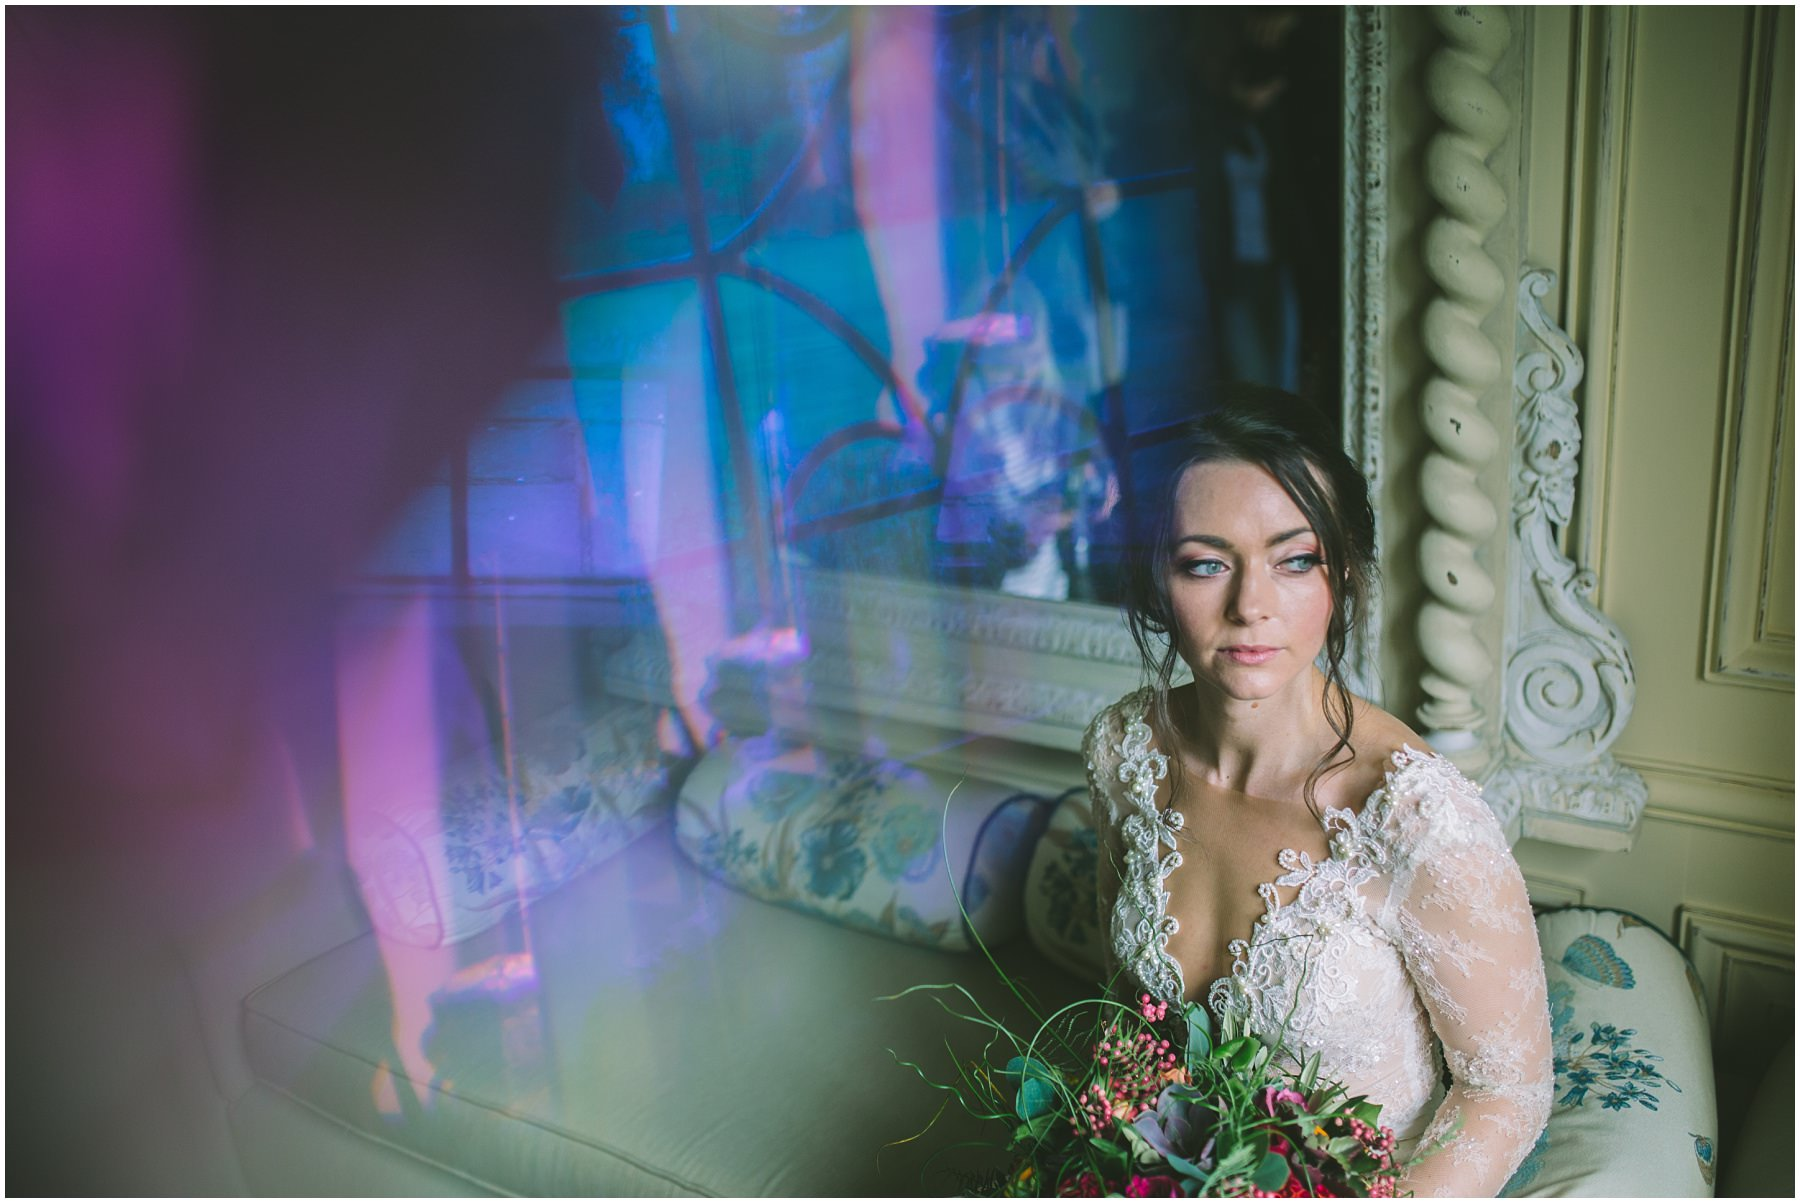 Bridal portrait with some lens flare